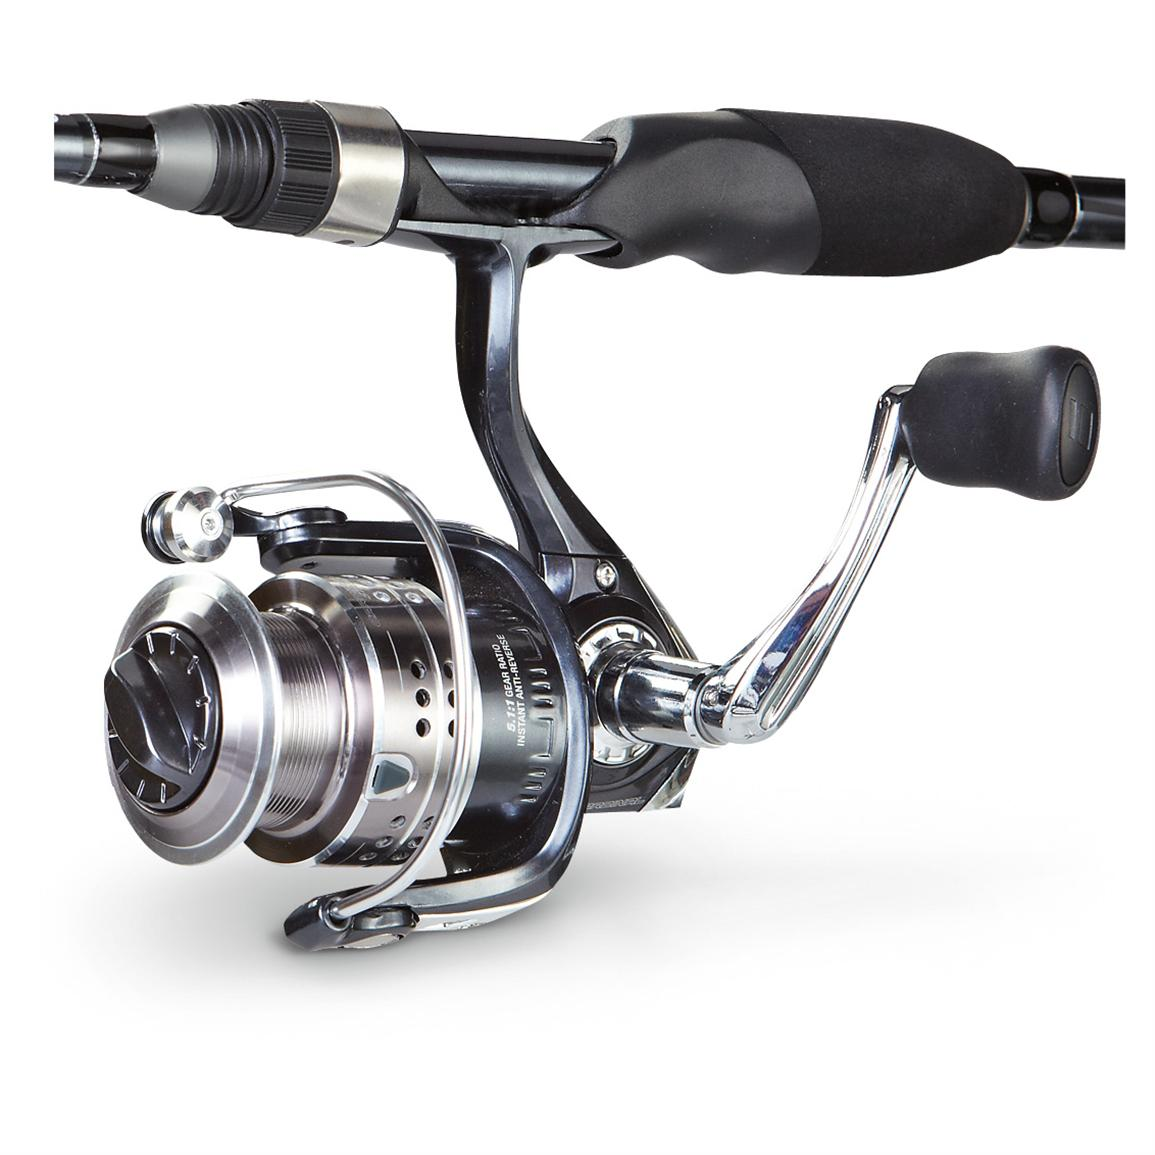 Abu garcia cardinal stx spinning 2 pc rod and reel for Fishing rod reel combo